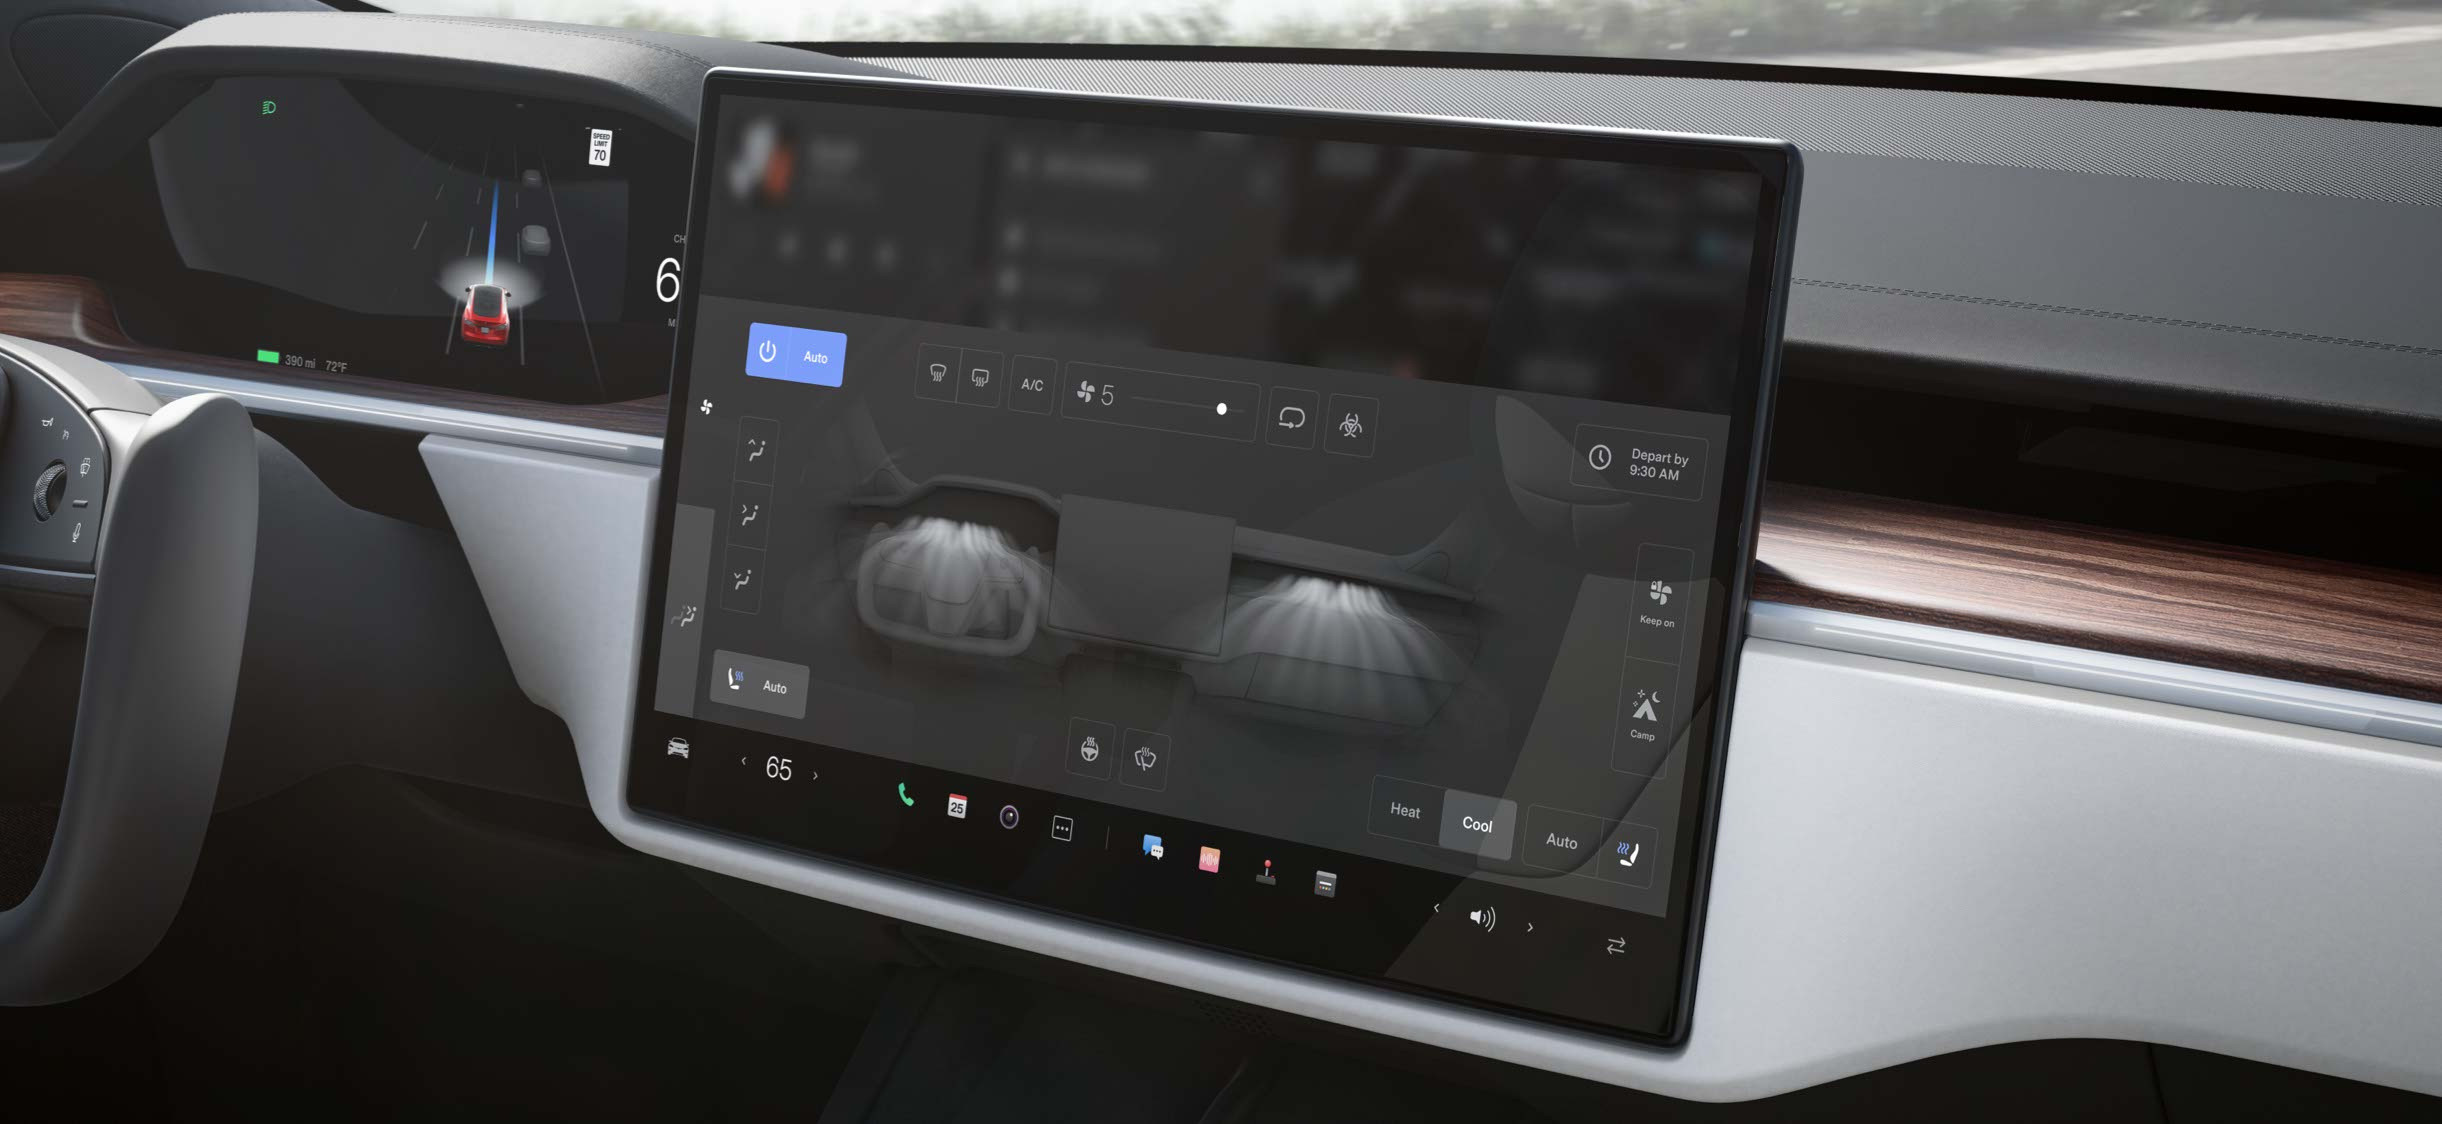 Model S Touchscreen mit Klimaanlagen-Bedienfeld